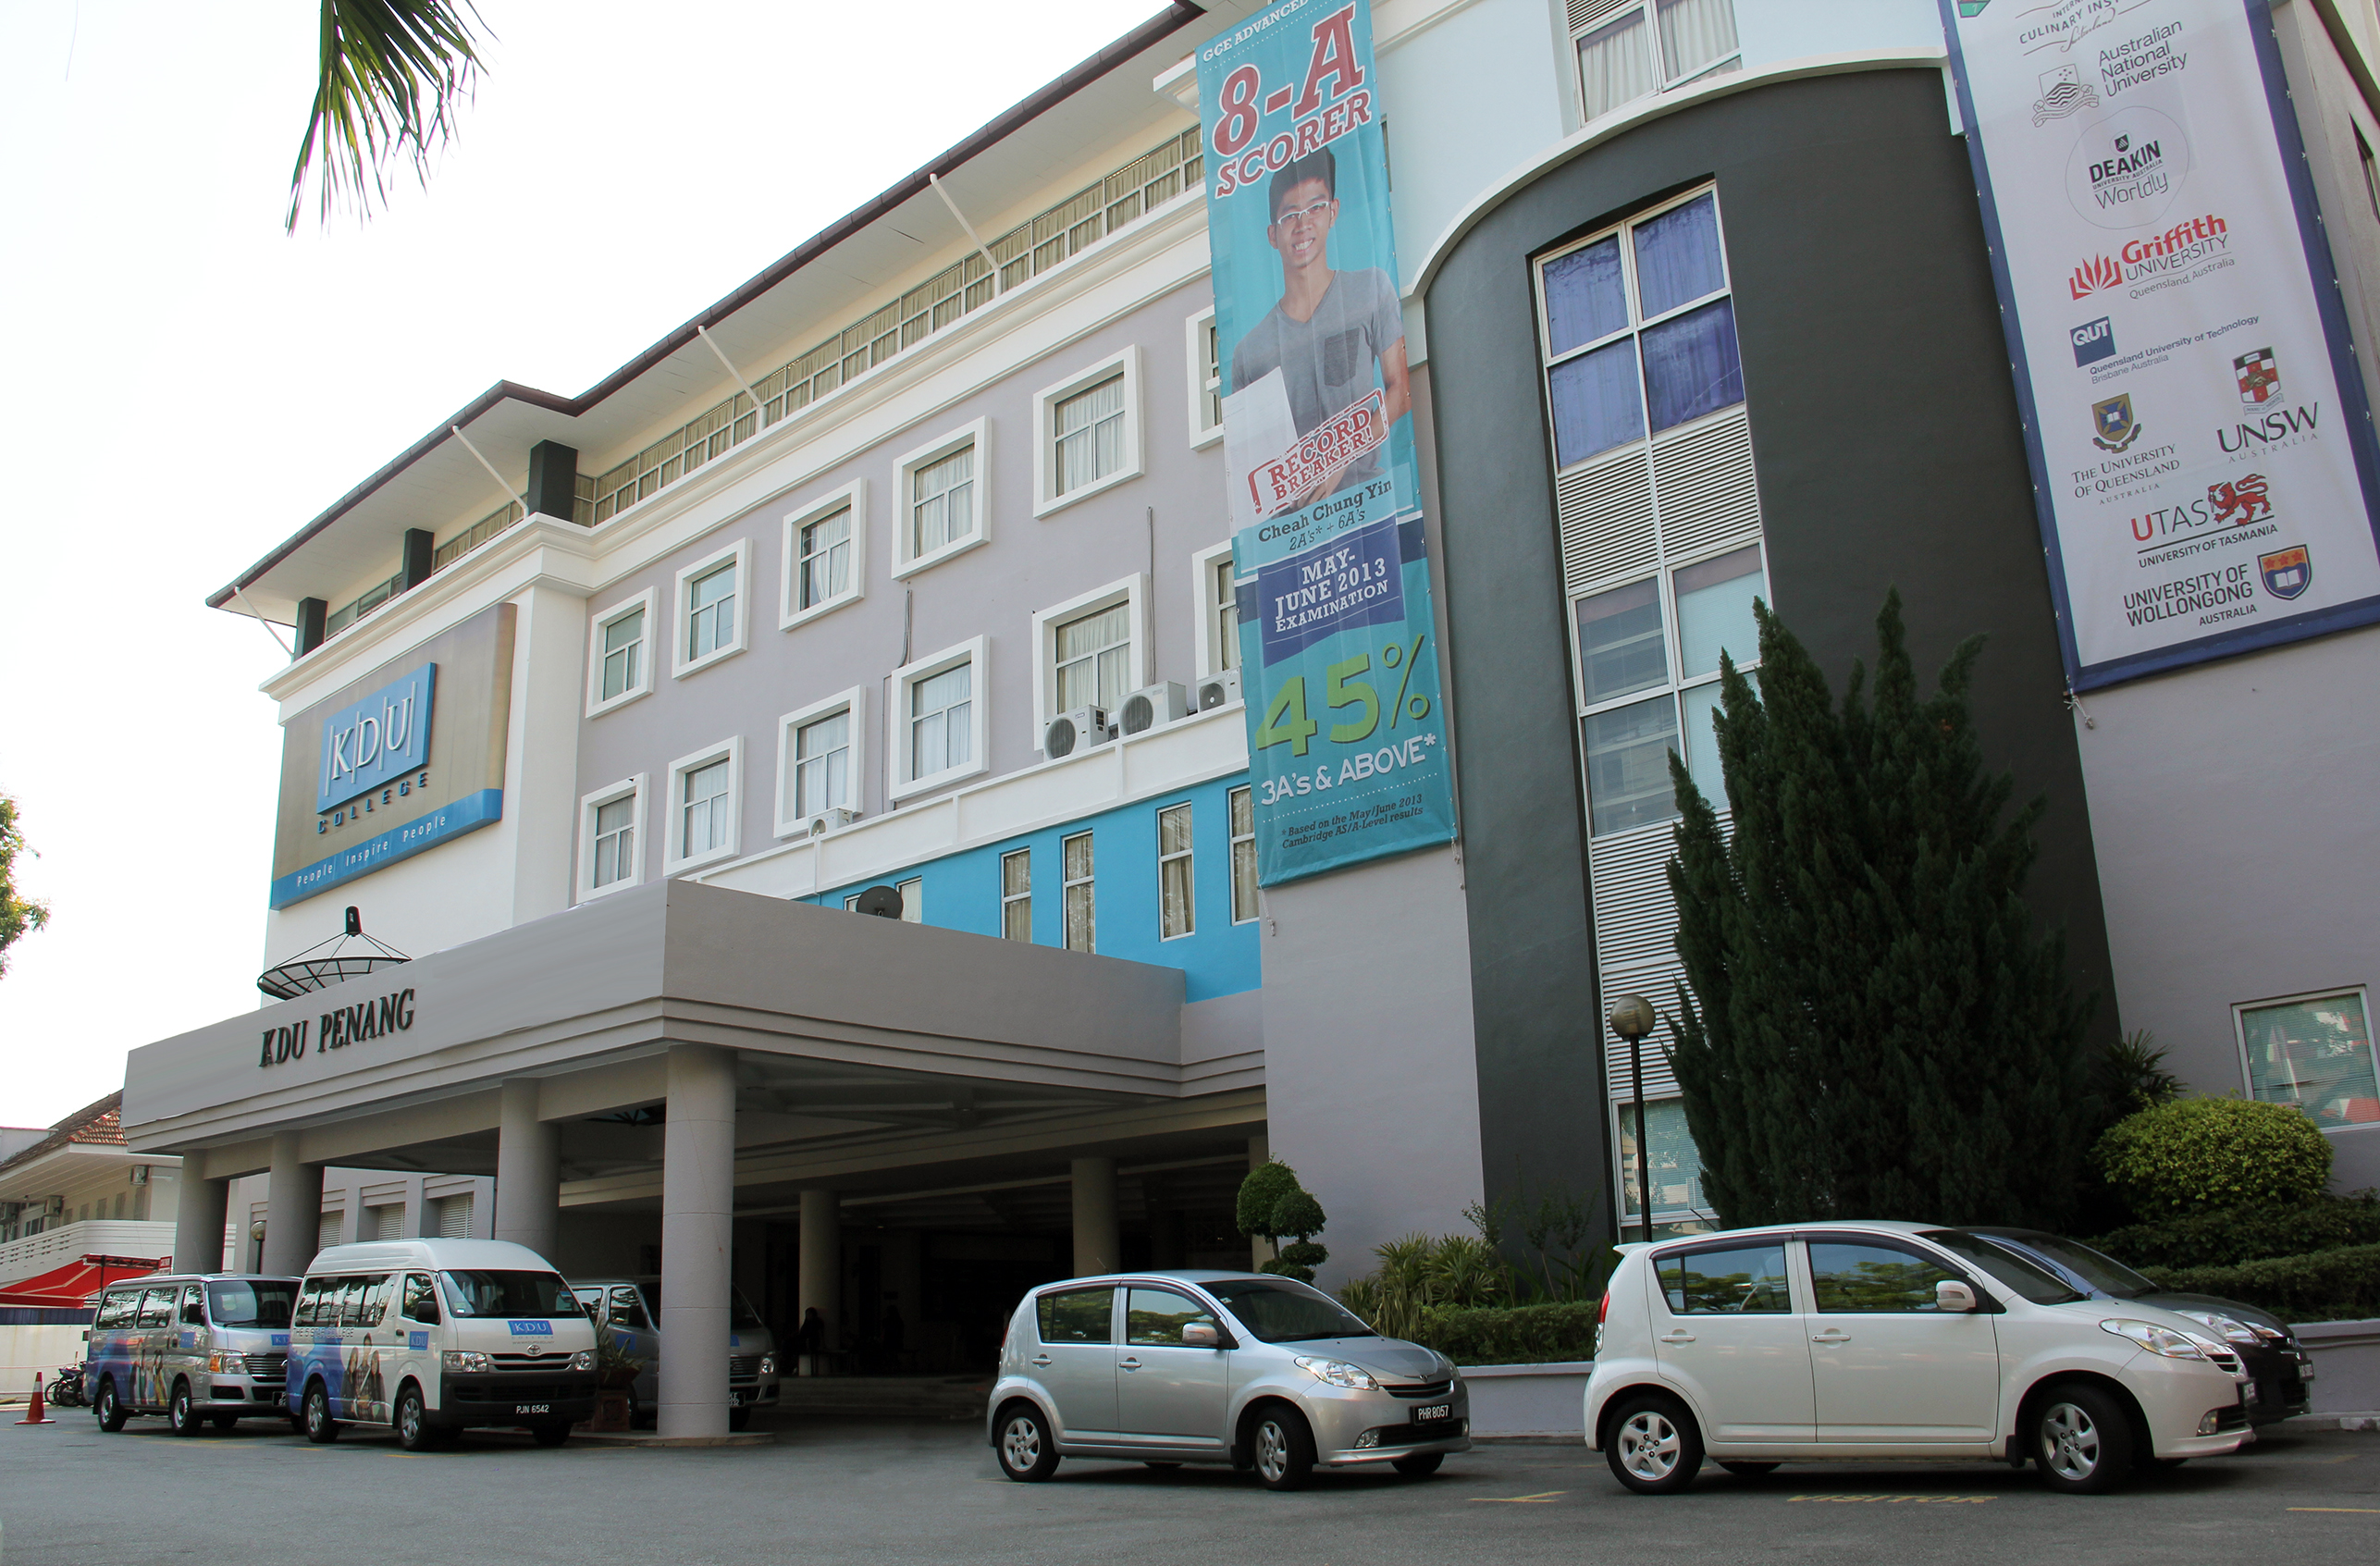 KDU College Penang Has The Best Facilities In For Design Courses